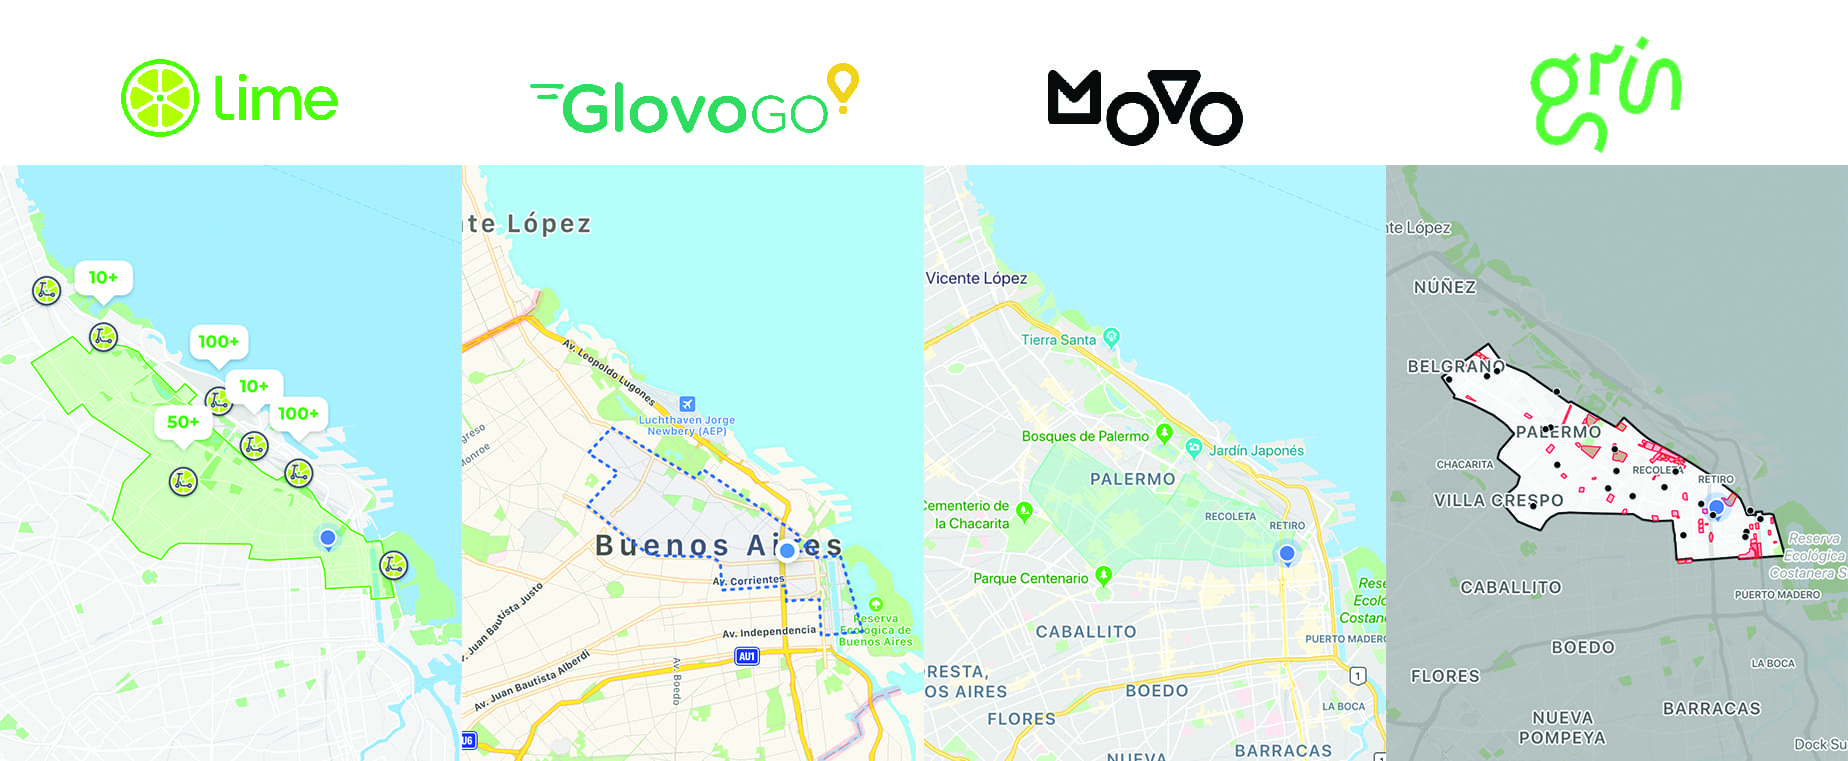 glovoGO-Lime-Grin-Movo-map